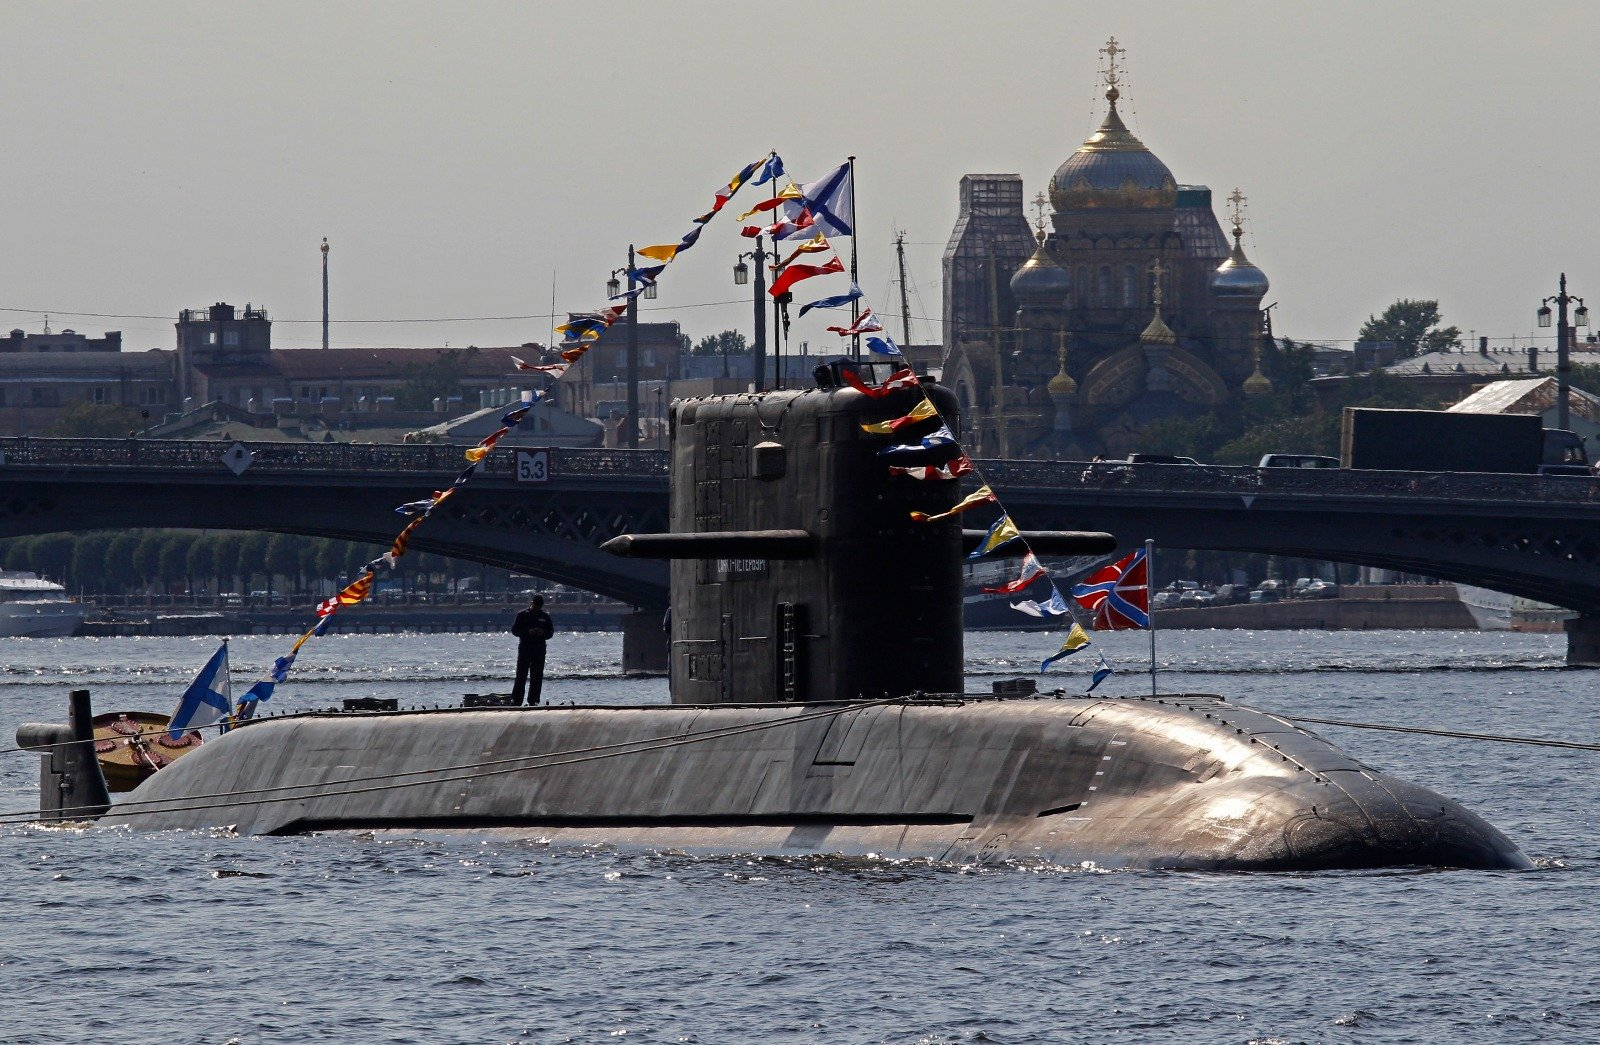 Russia's New Nuclear Weapon Could Make America Uninhabitable